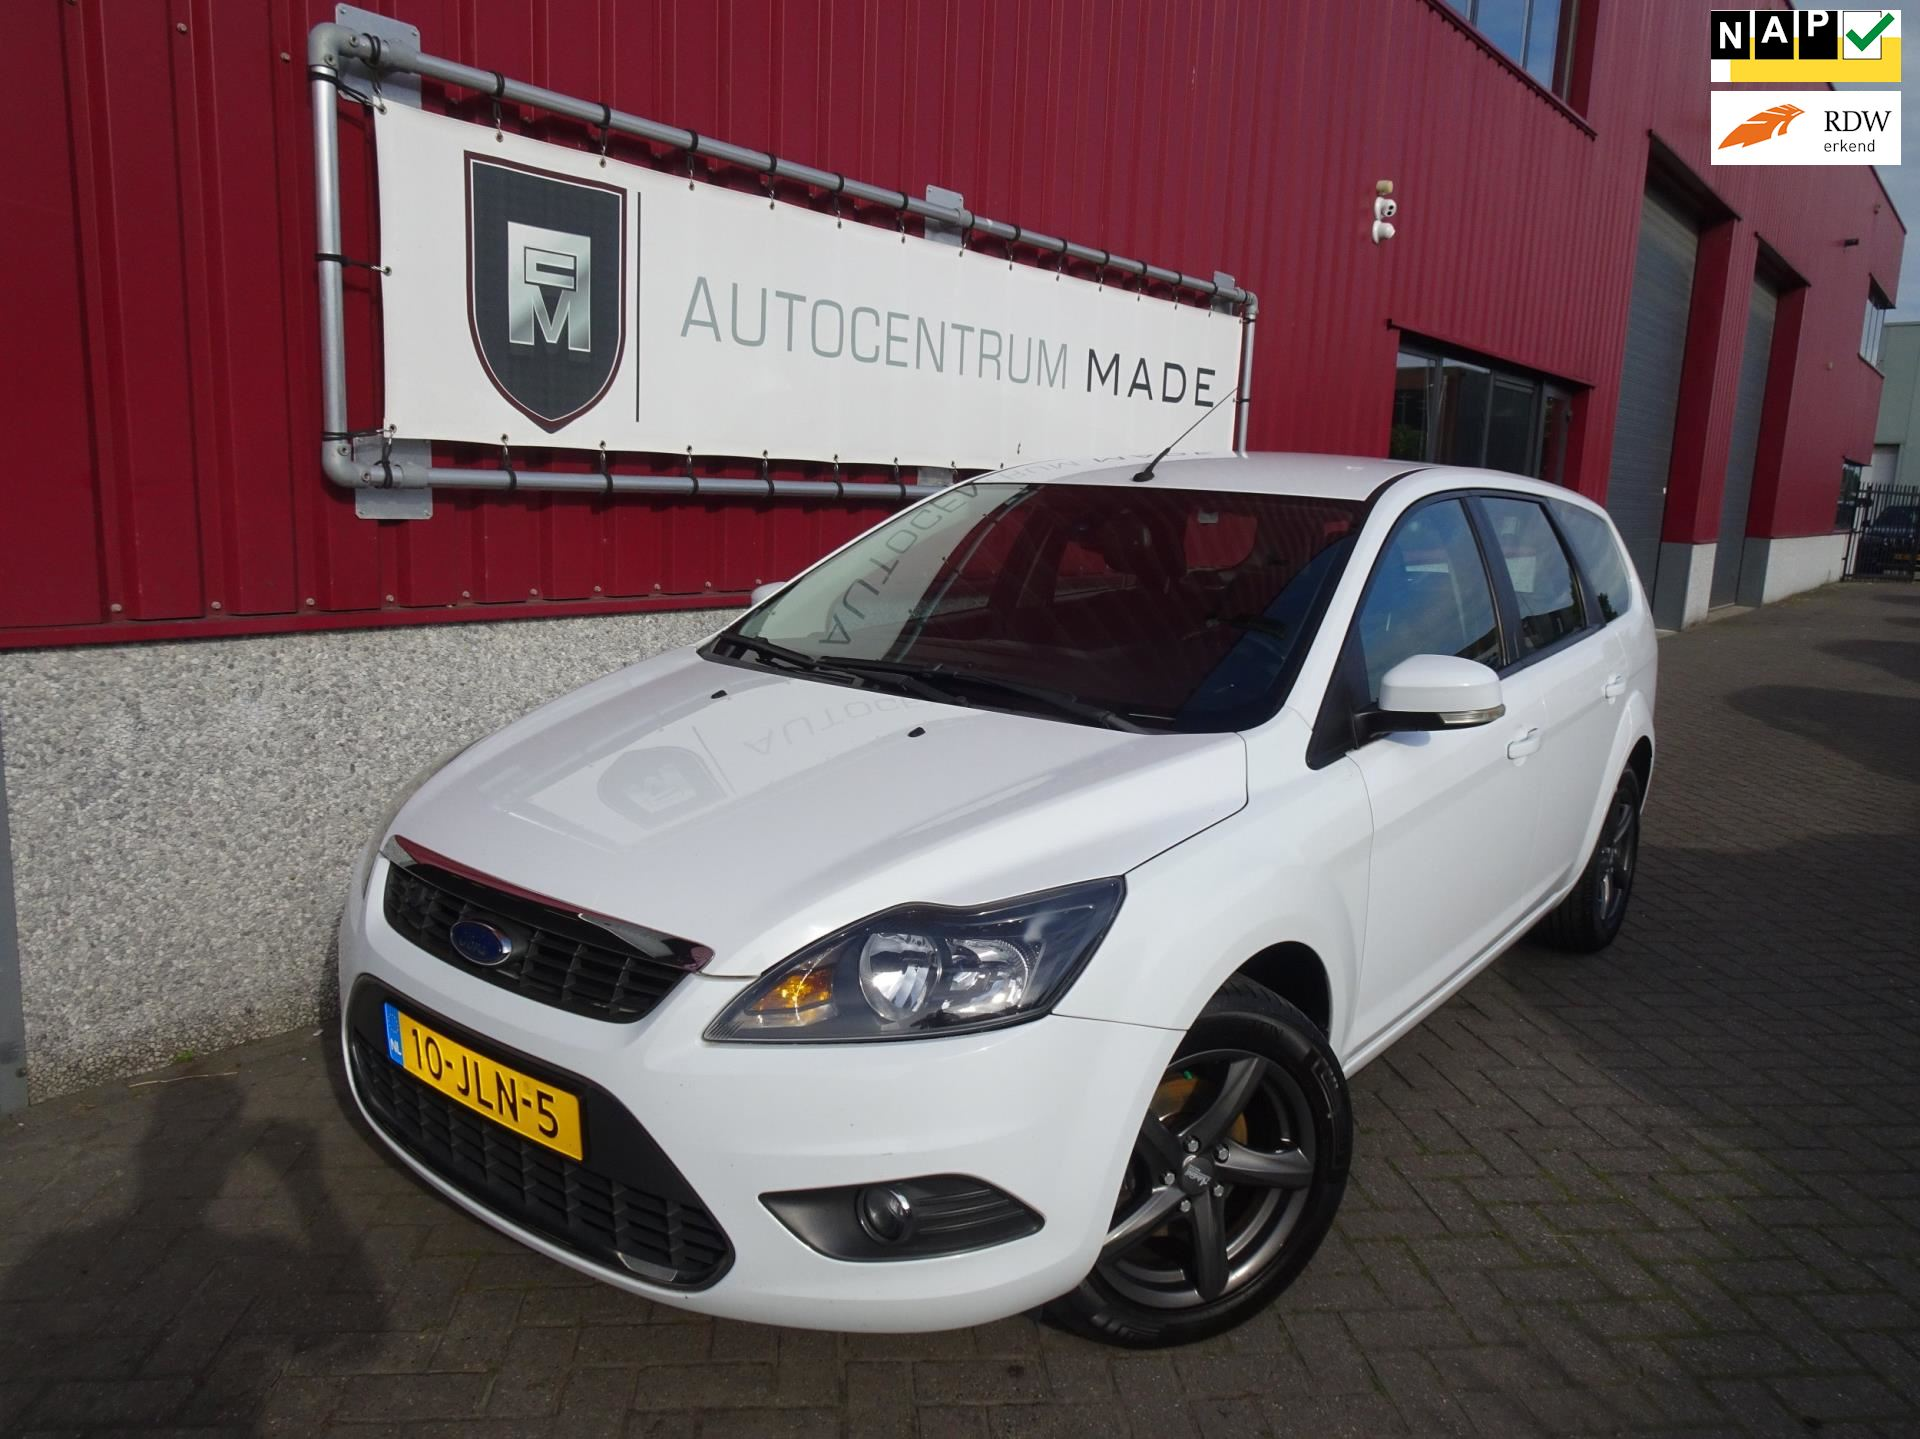 Ford Focus Wagon occasion - Auto Centrum Made